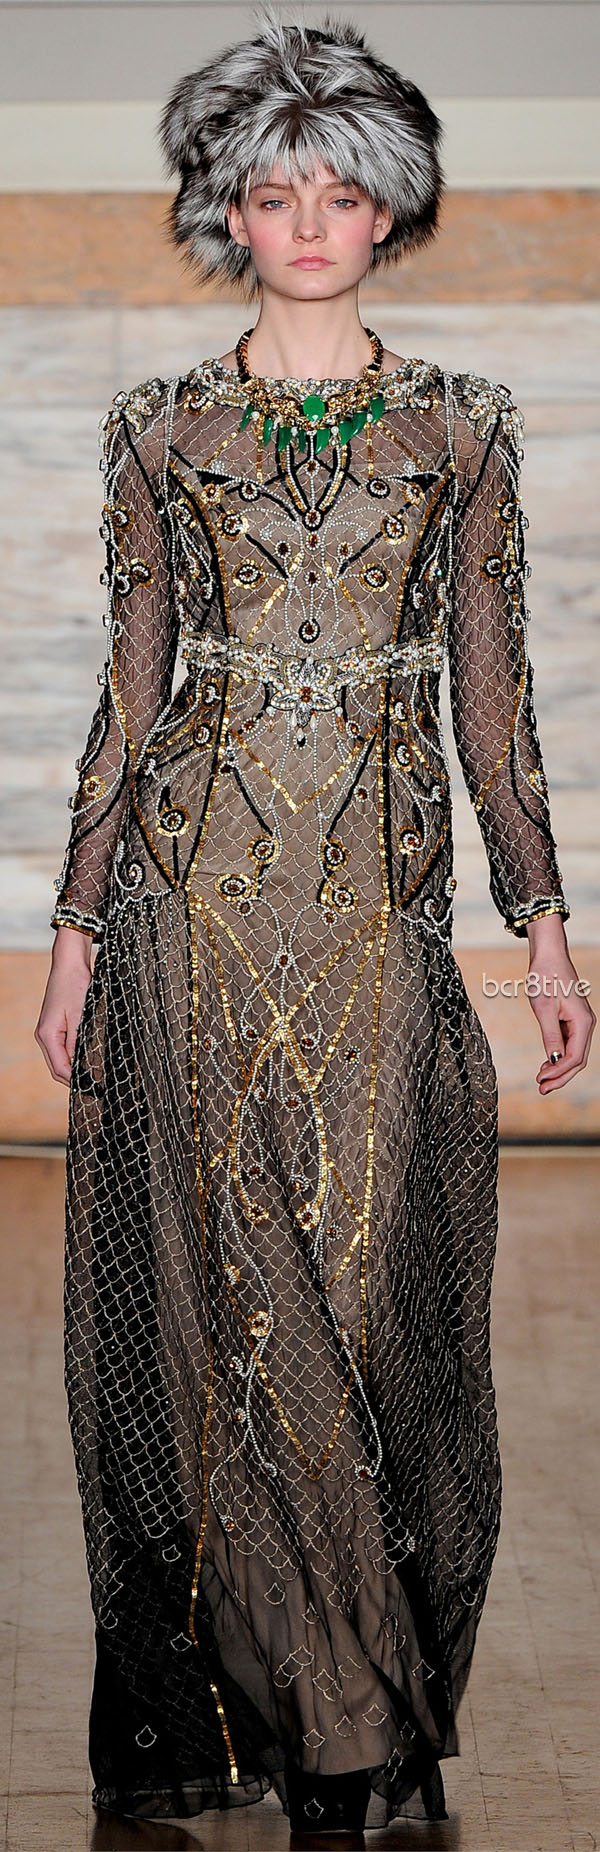 Temperley London Fall Winter 2012-13 Collection _035